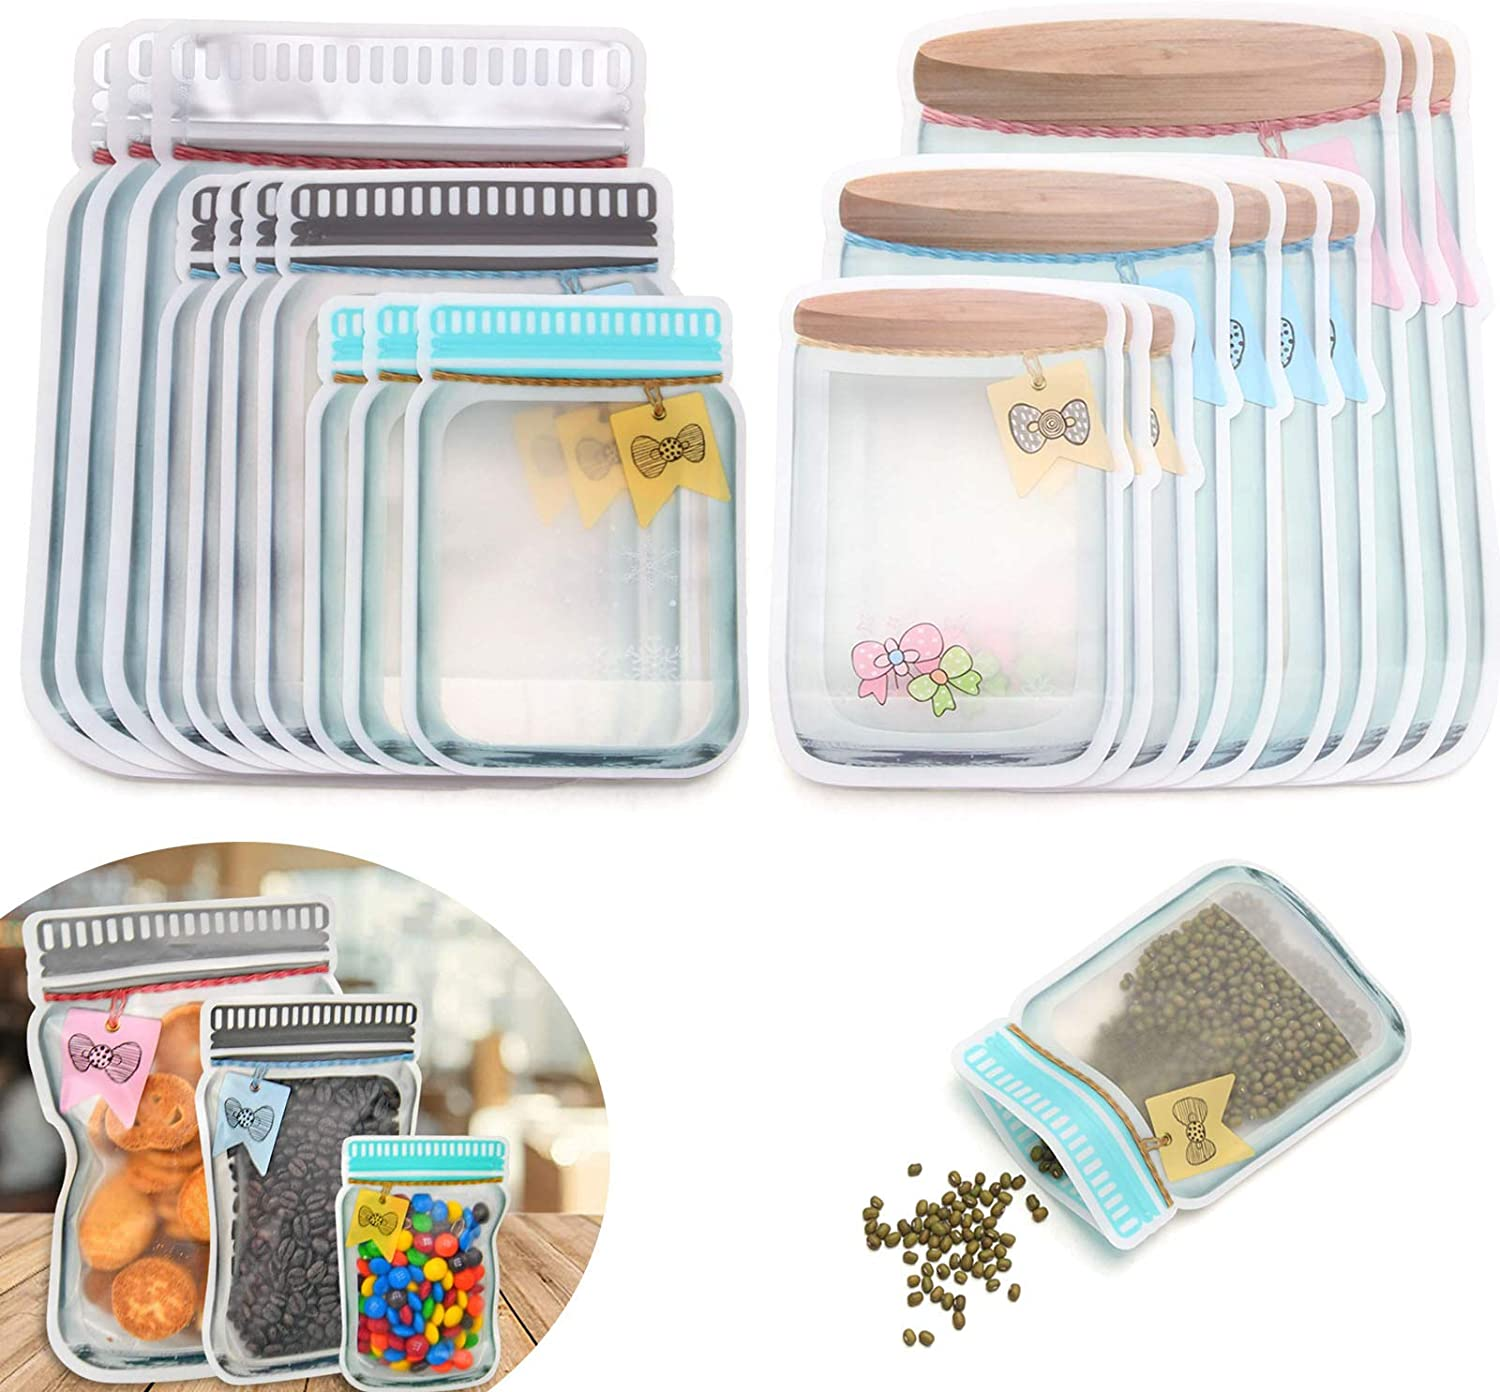 HLeoz 20pcs Mason Jar Ziplock Bags Storage for Food Snack Sandwich Reusable Airtight Seal Food Bag Leak-Proof Food Saver Bags for Travel Camping and Kids Resealable Zipper Bottles Shaped Baggies